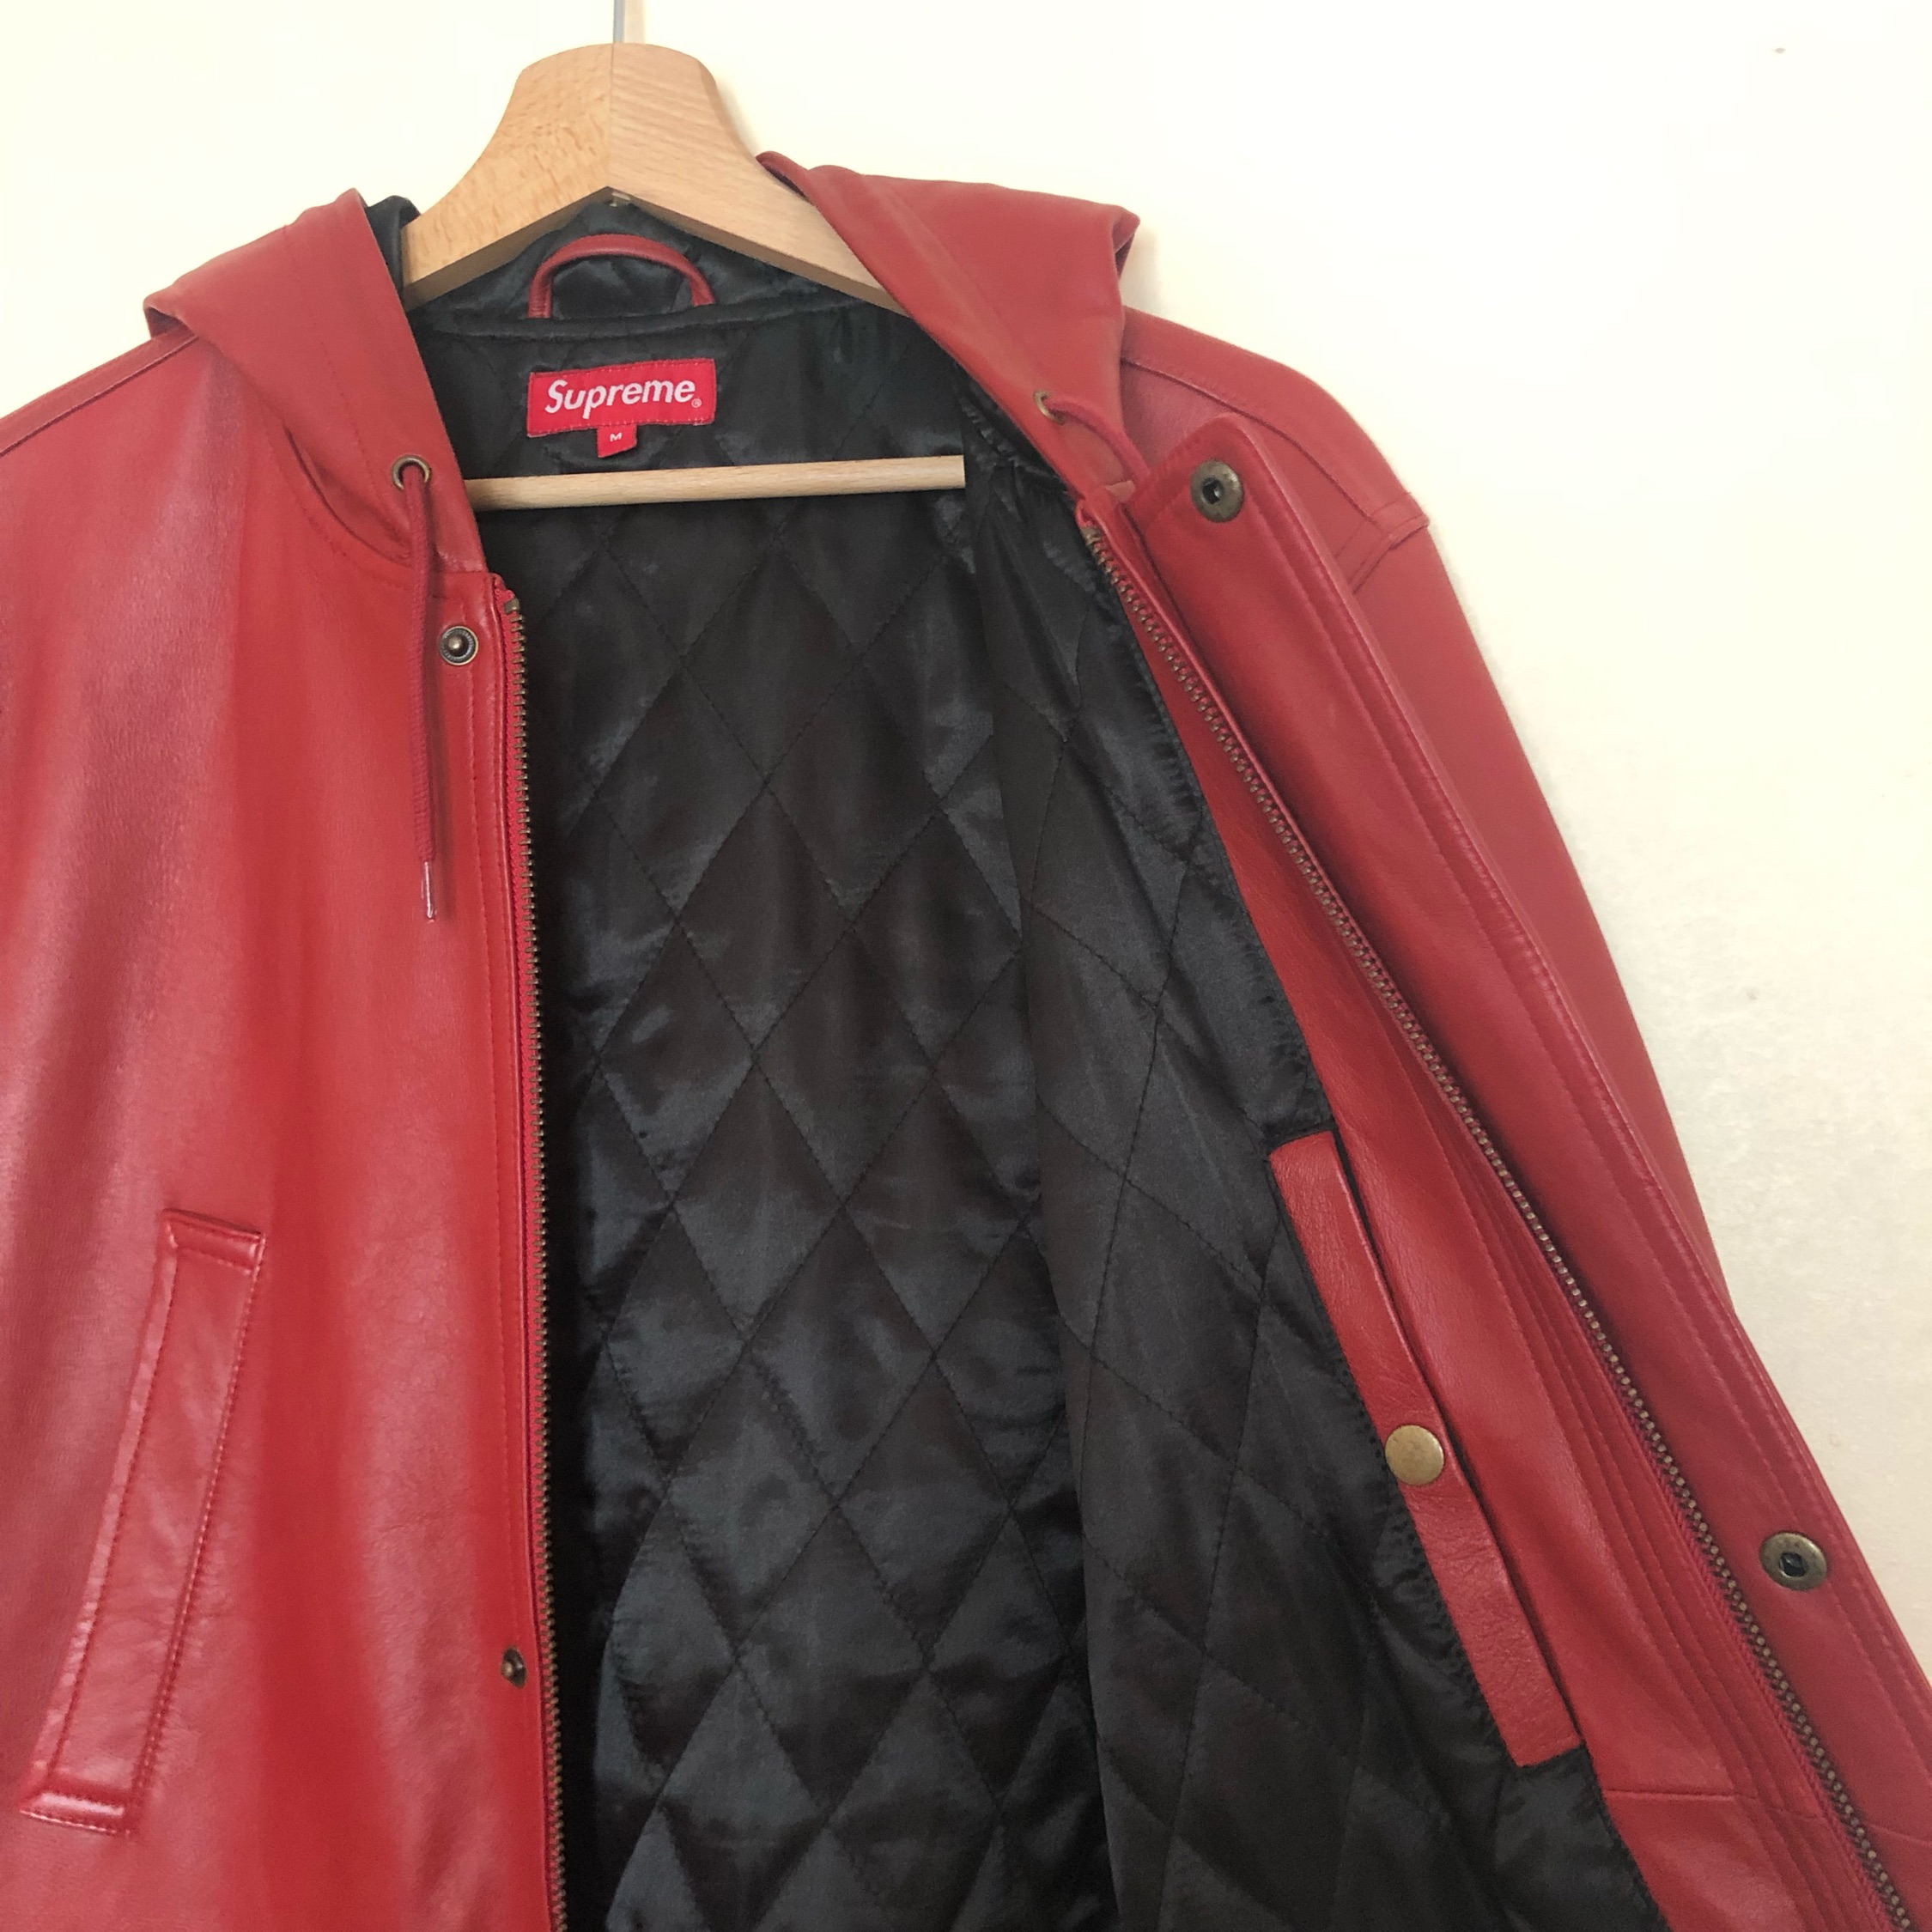 Supreme - Hooded Leather Parka Jacket Fw14